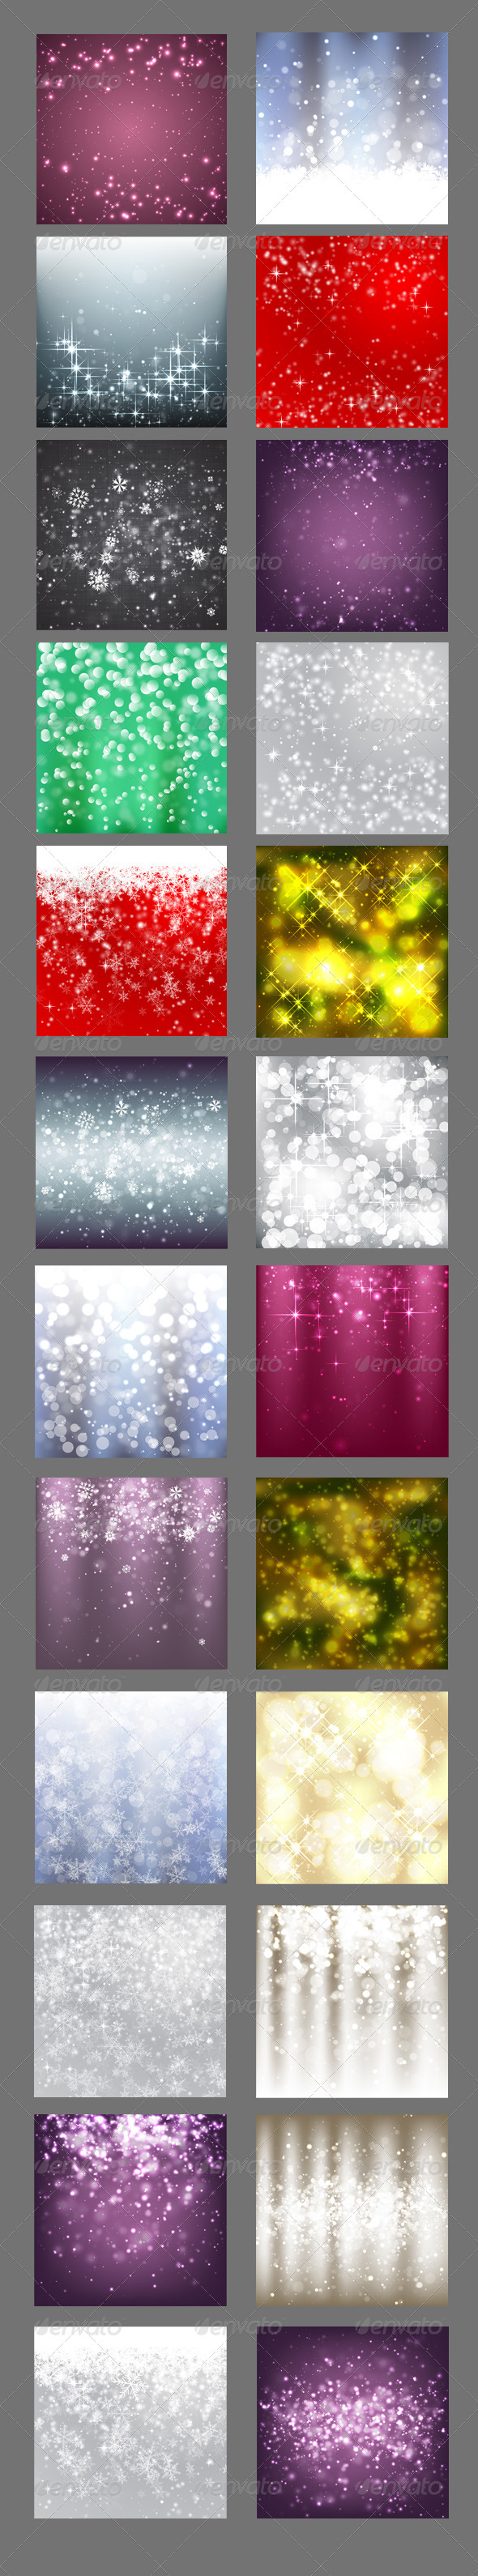 GraphicRiver 24 Christmas Vector Backgrounds 6208389